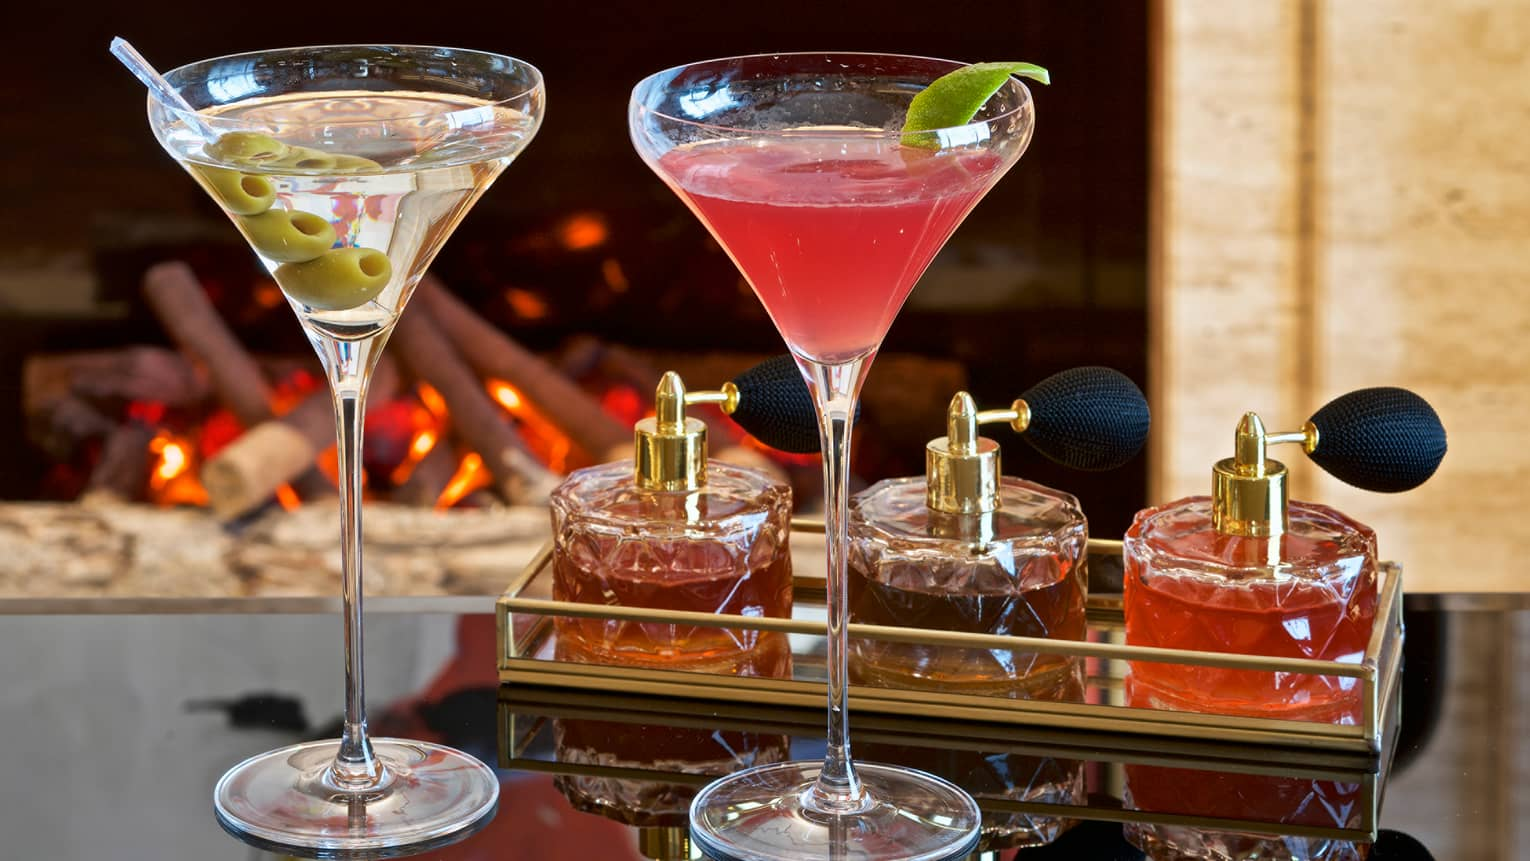 Two martinis on counter, one with olive spear and the other with pink liquid, lime garnish